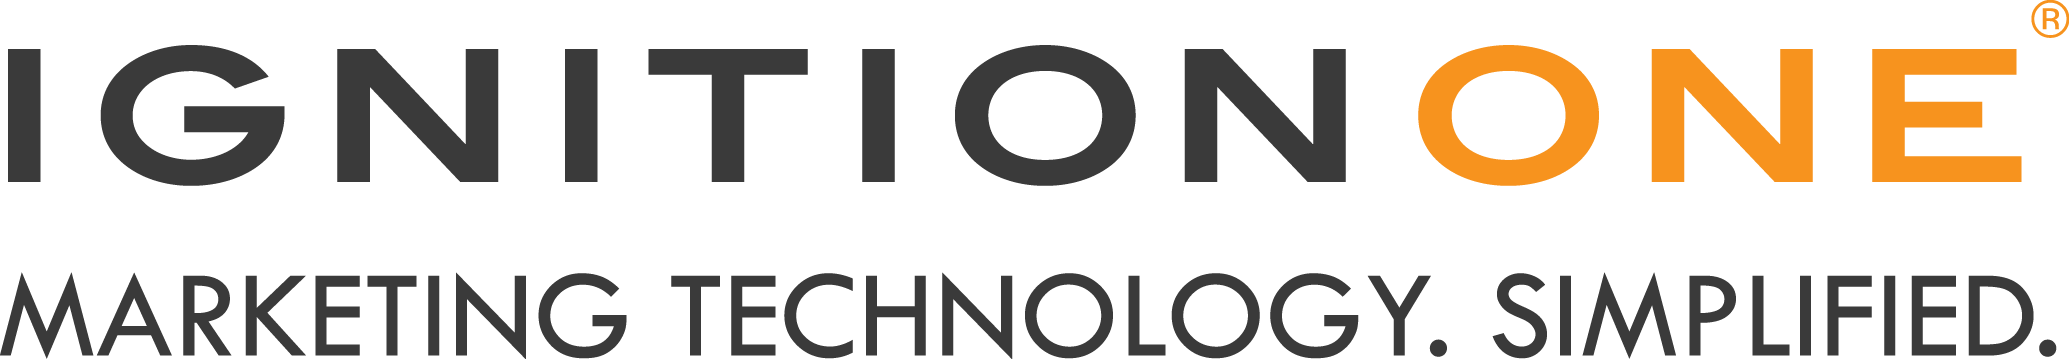 IgnitionOne-logo-new-overwhite-with-tagline-01